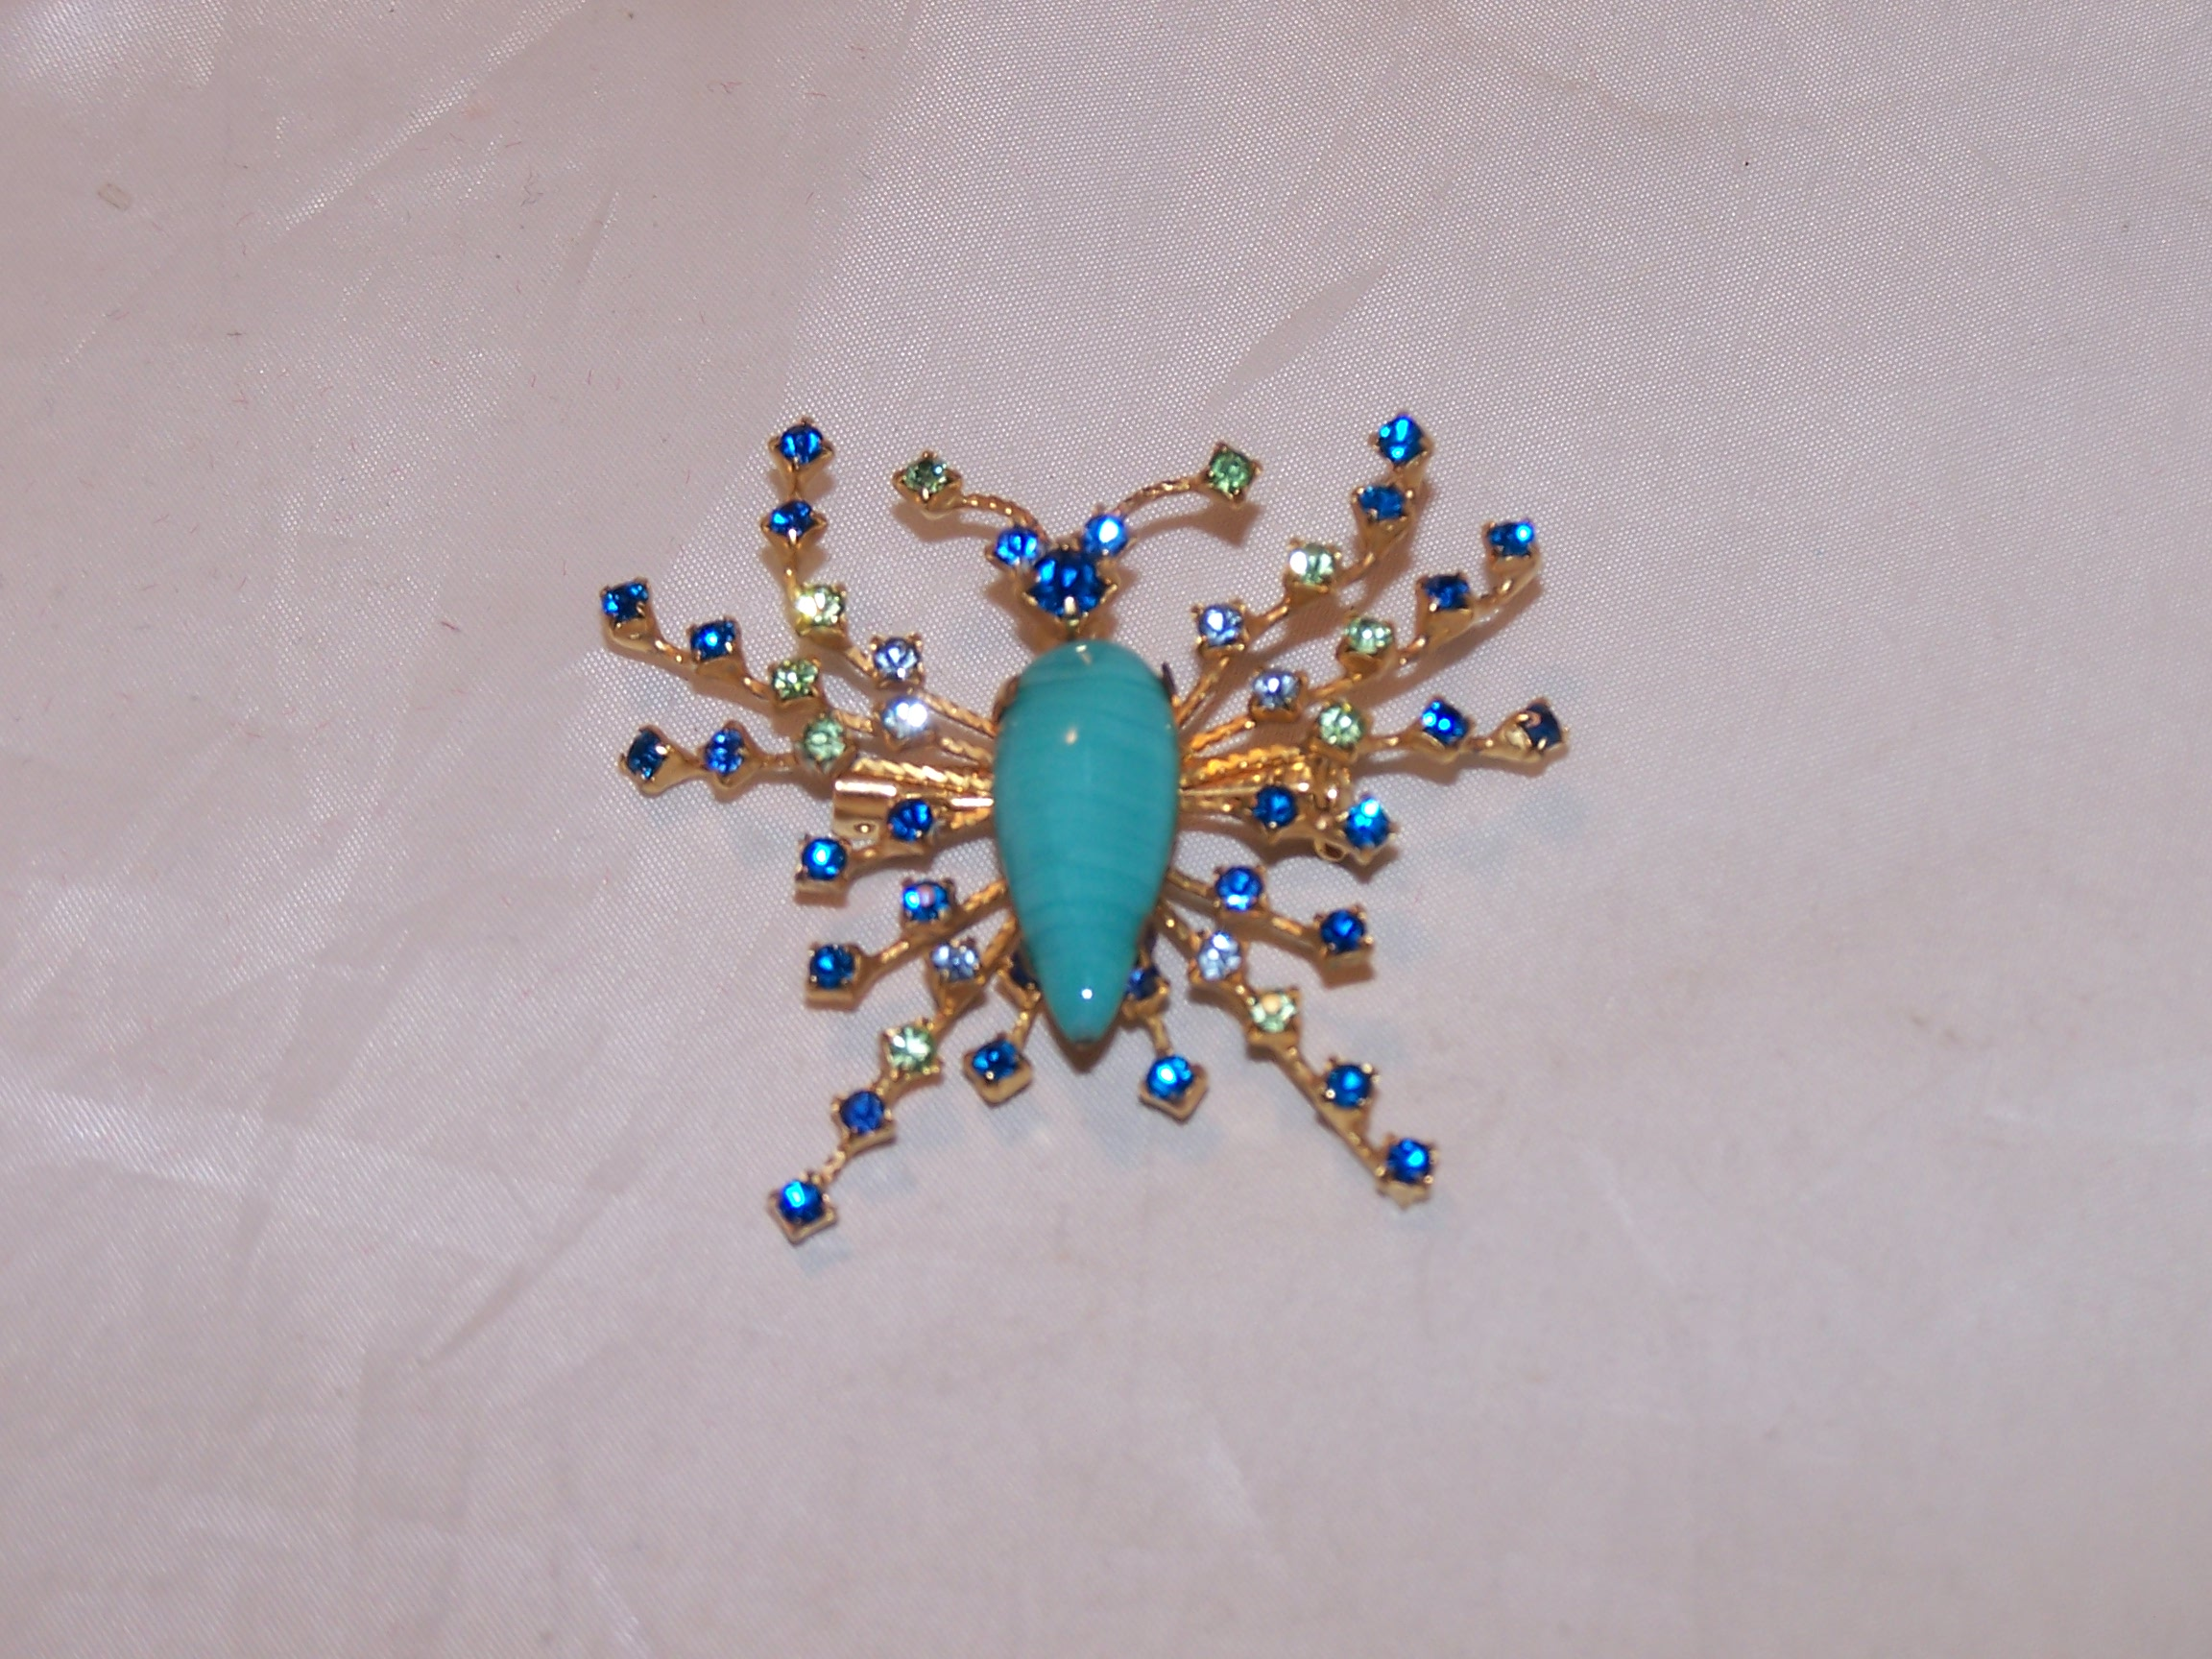 Joesph Warner Bug Pin, Brooch, Prong Set Rhinestones, Vintage